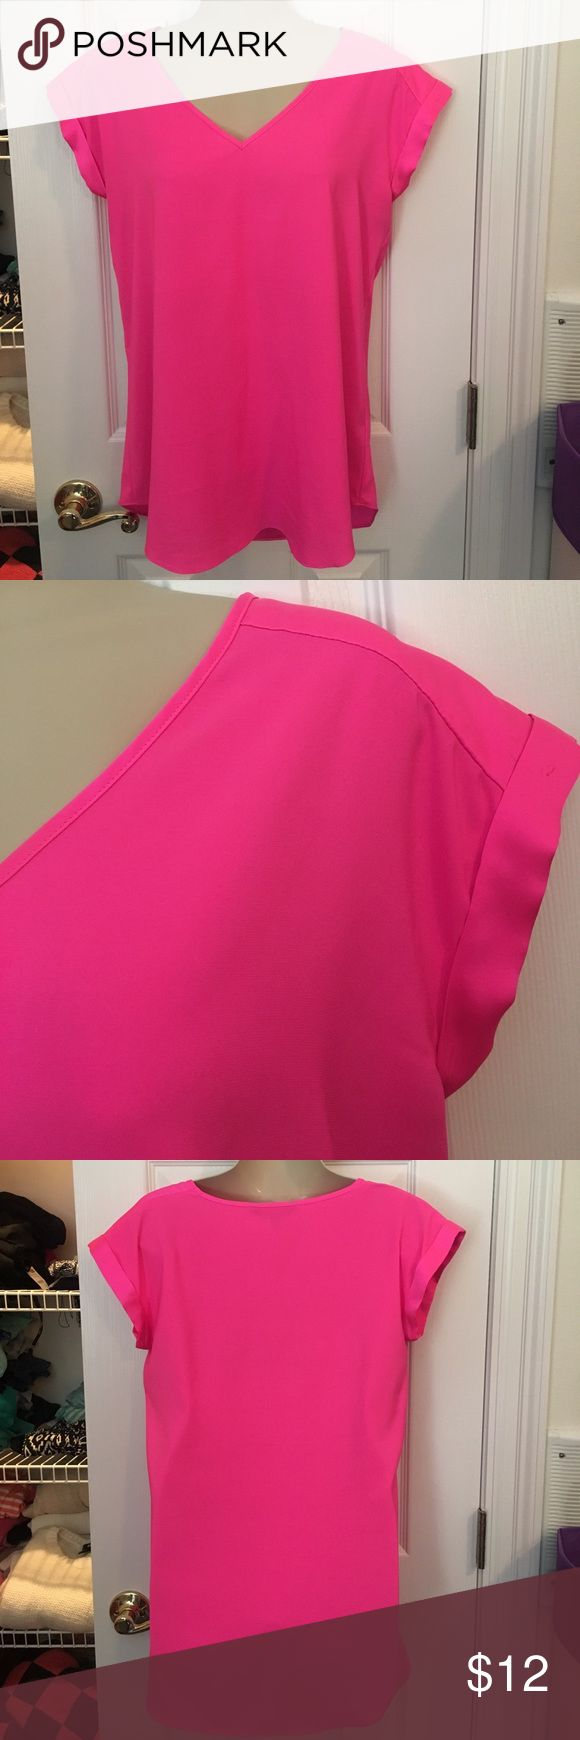 Express hot pink shirt- small In great condition Express Tops